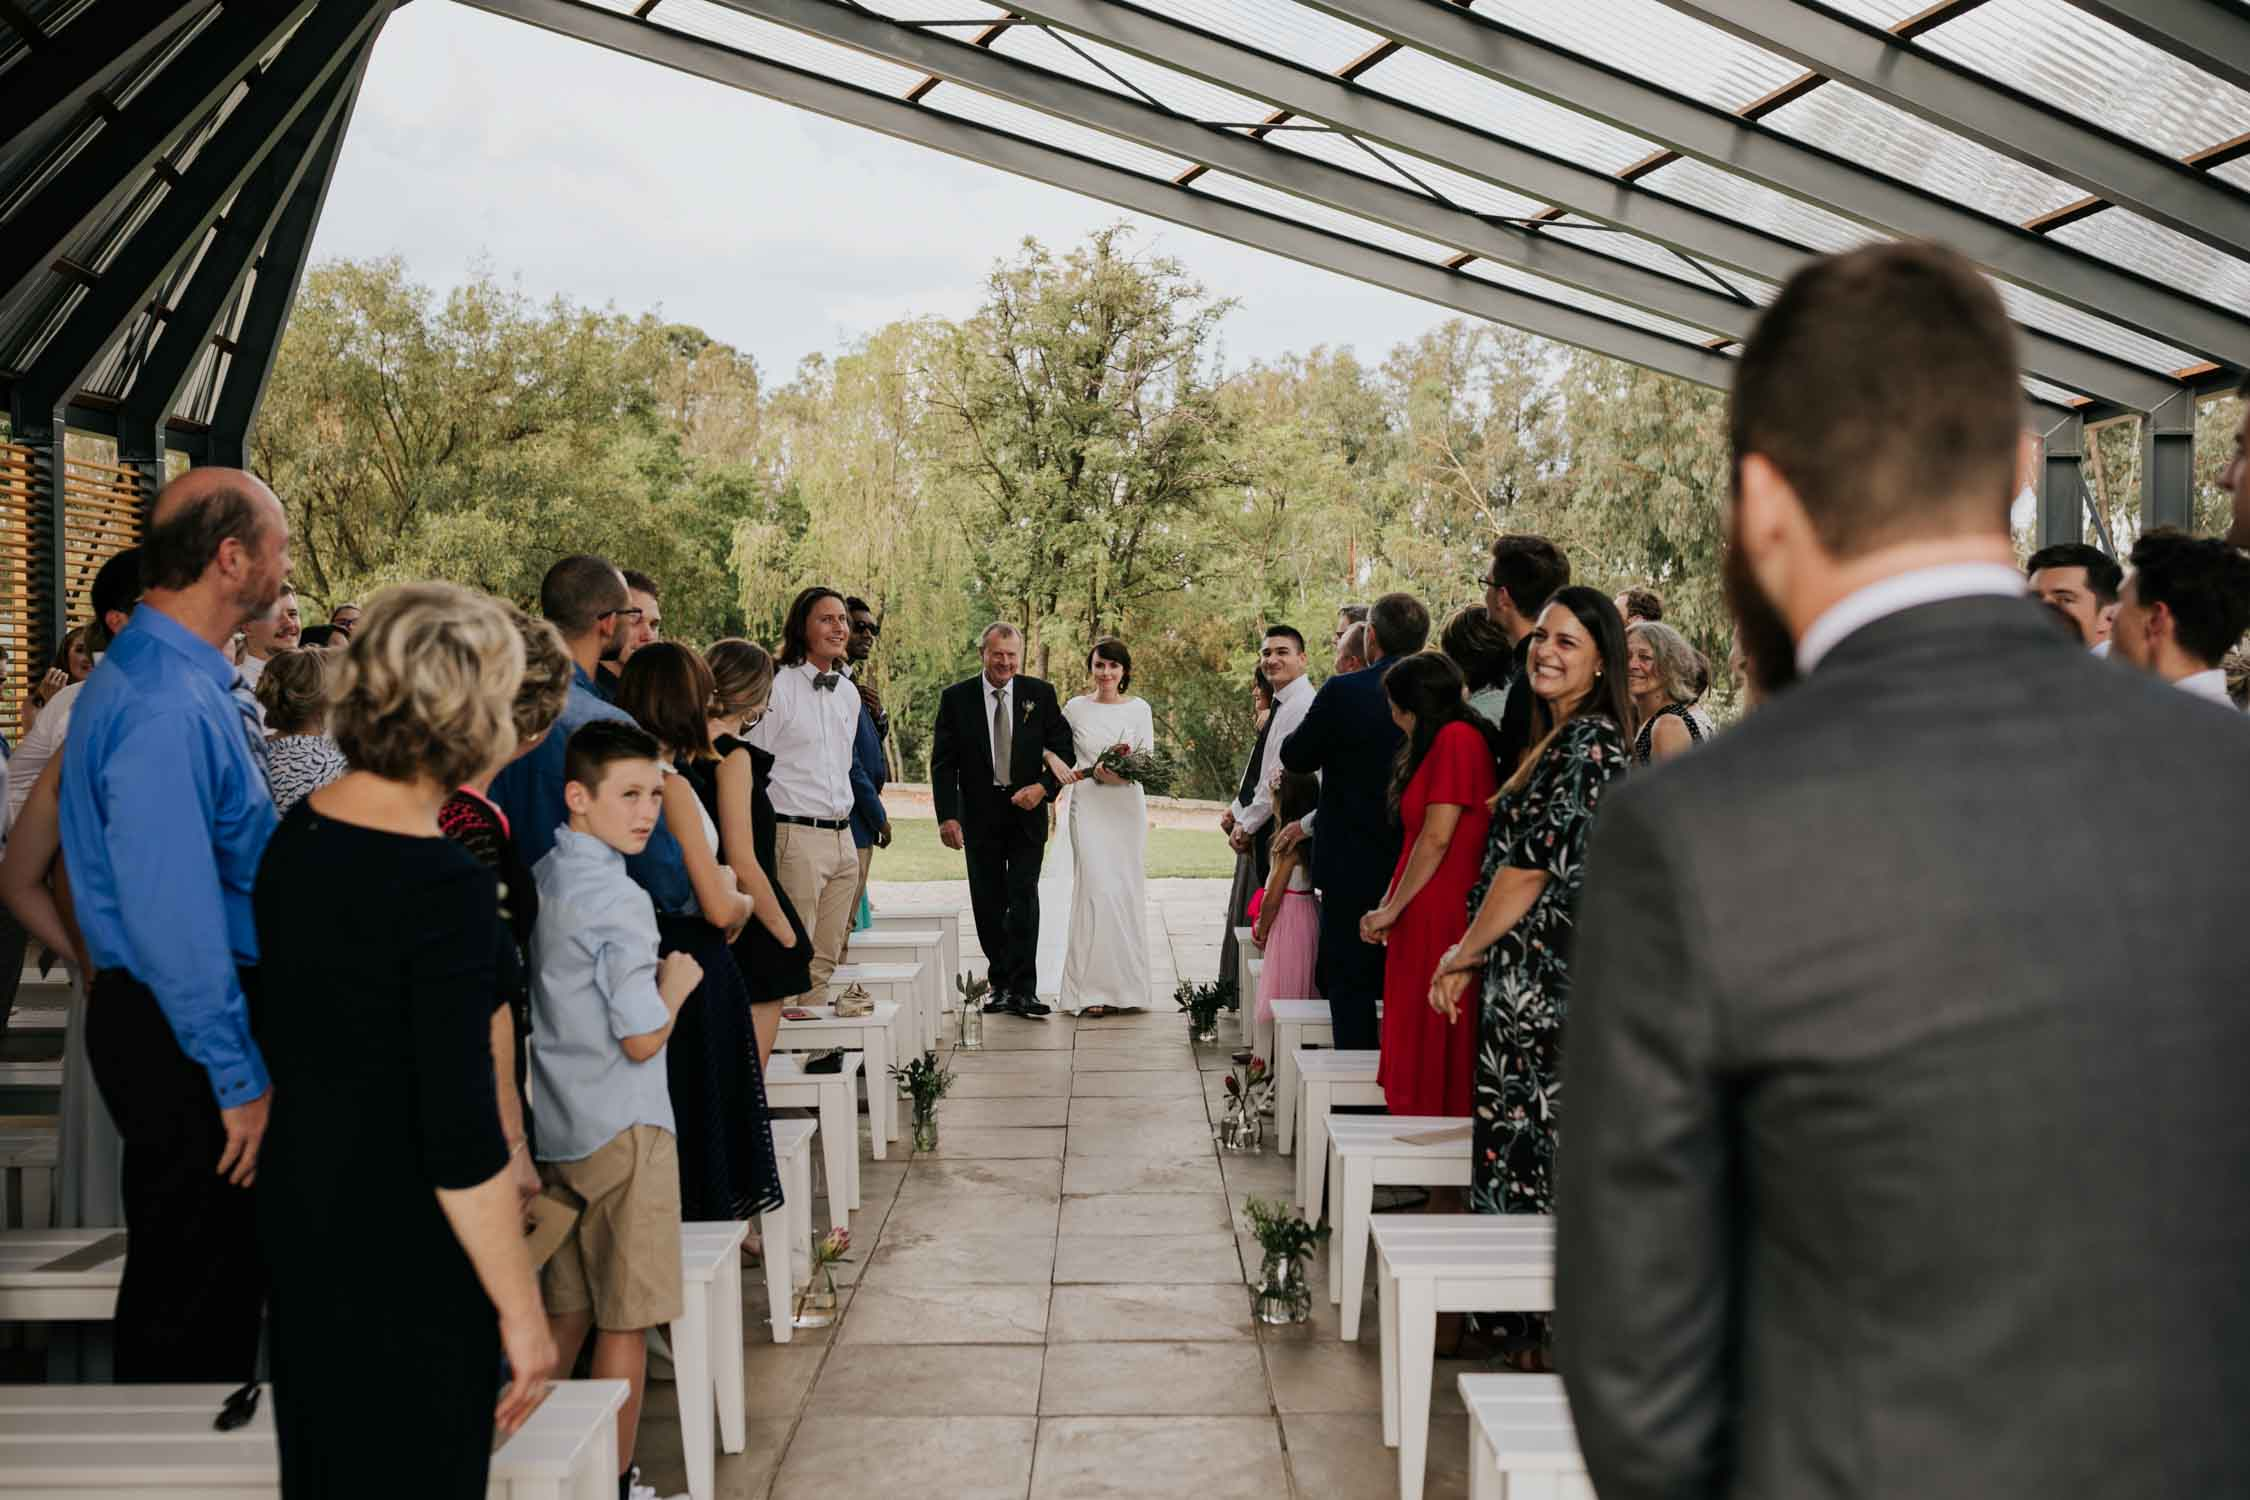 Modern simple bride walks down the aisle with her father in outdoor midcentury wedding ceremony venue